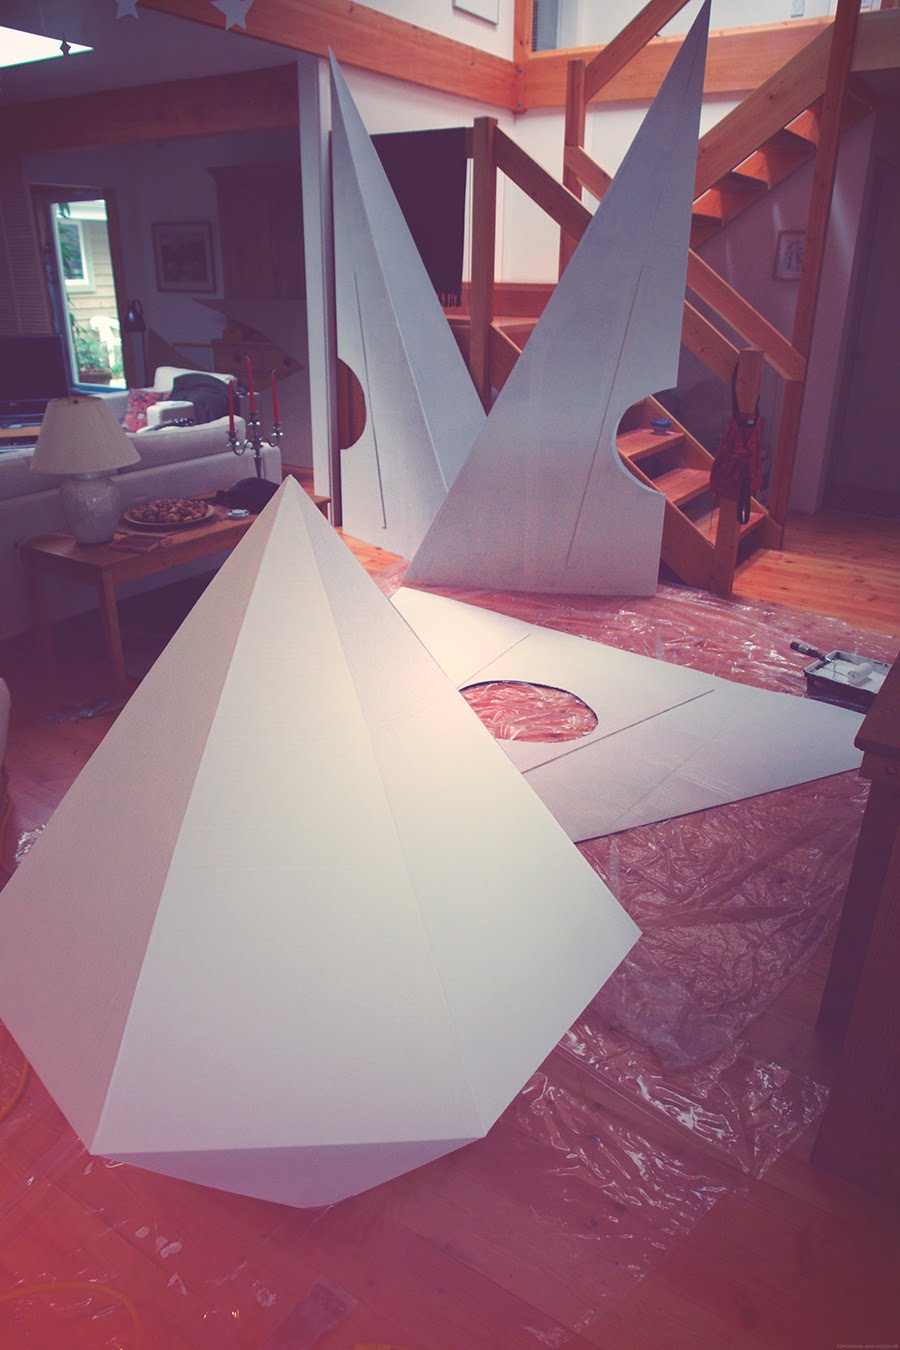 ADRIEN DEGGAN'S BLOG: Three Giant Paper Airplanes and a Sapphire.